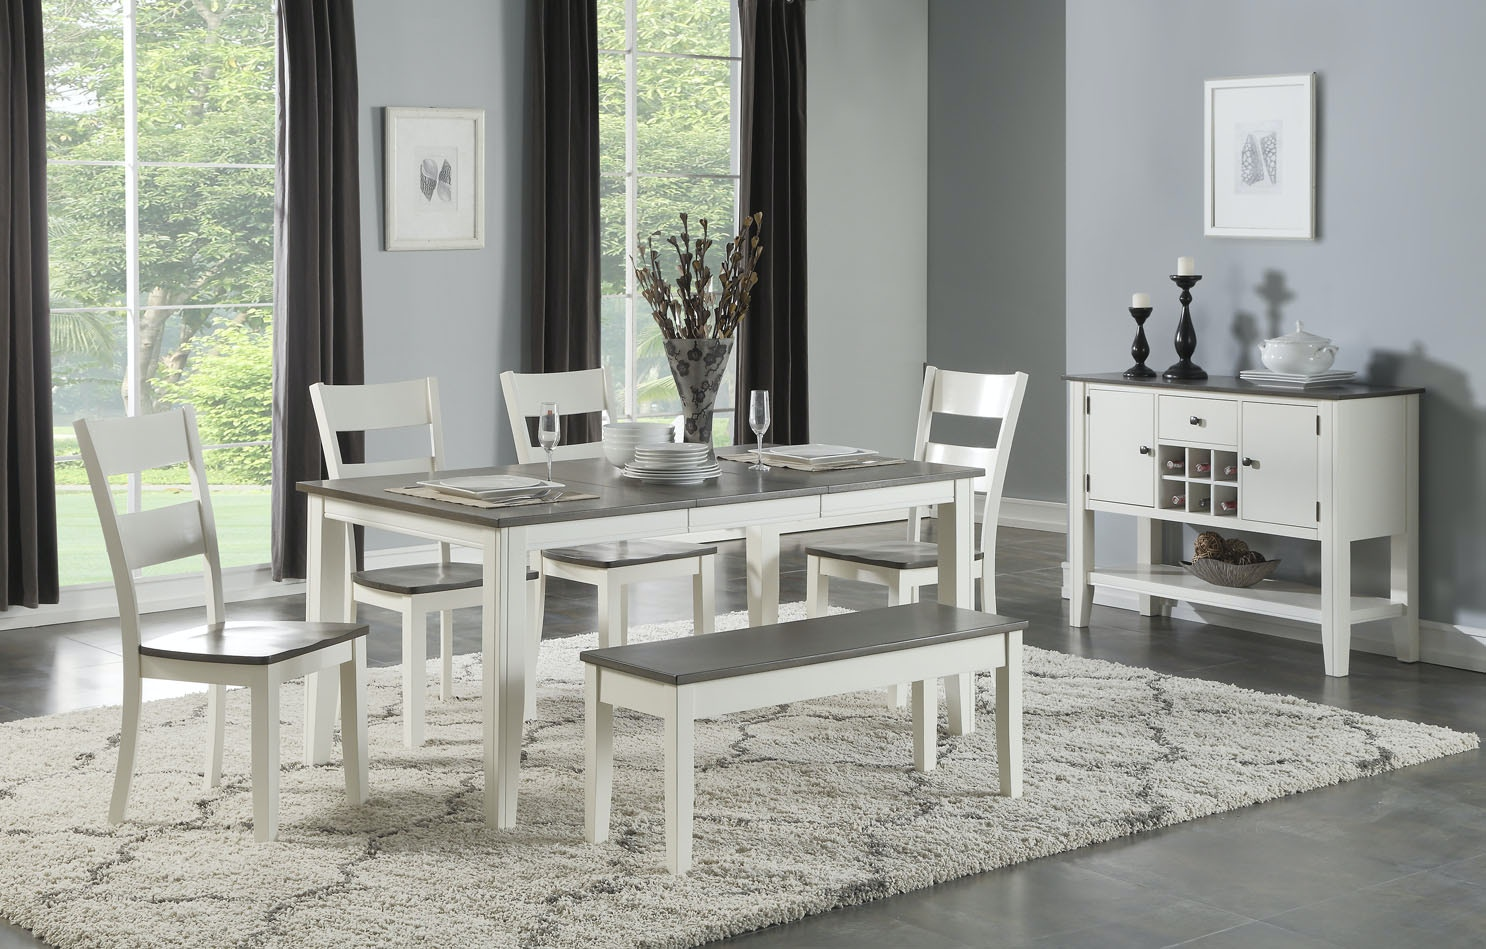 Holland House Dining Room Athens Dining Set 358629 Furniture Fair